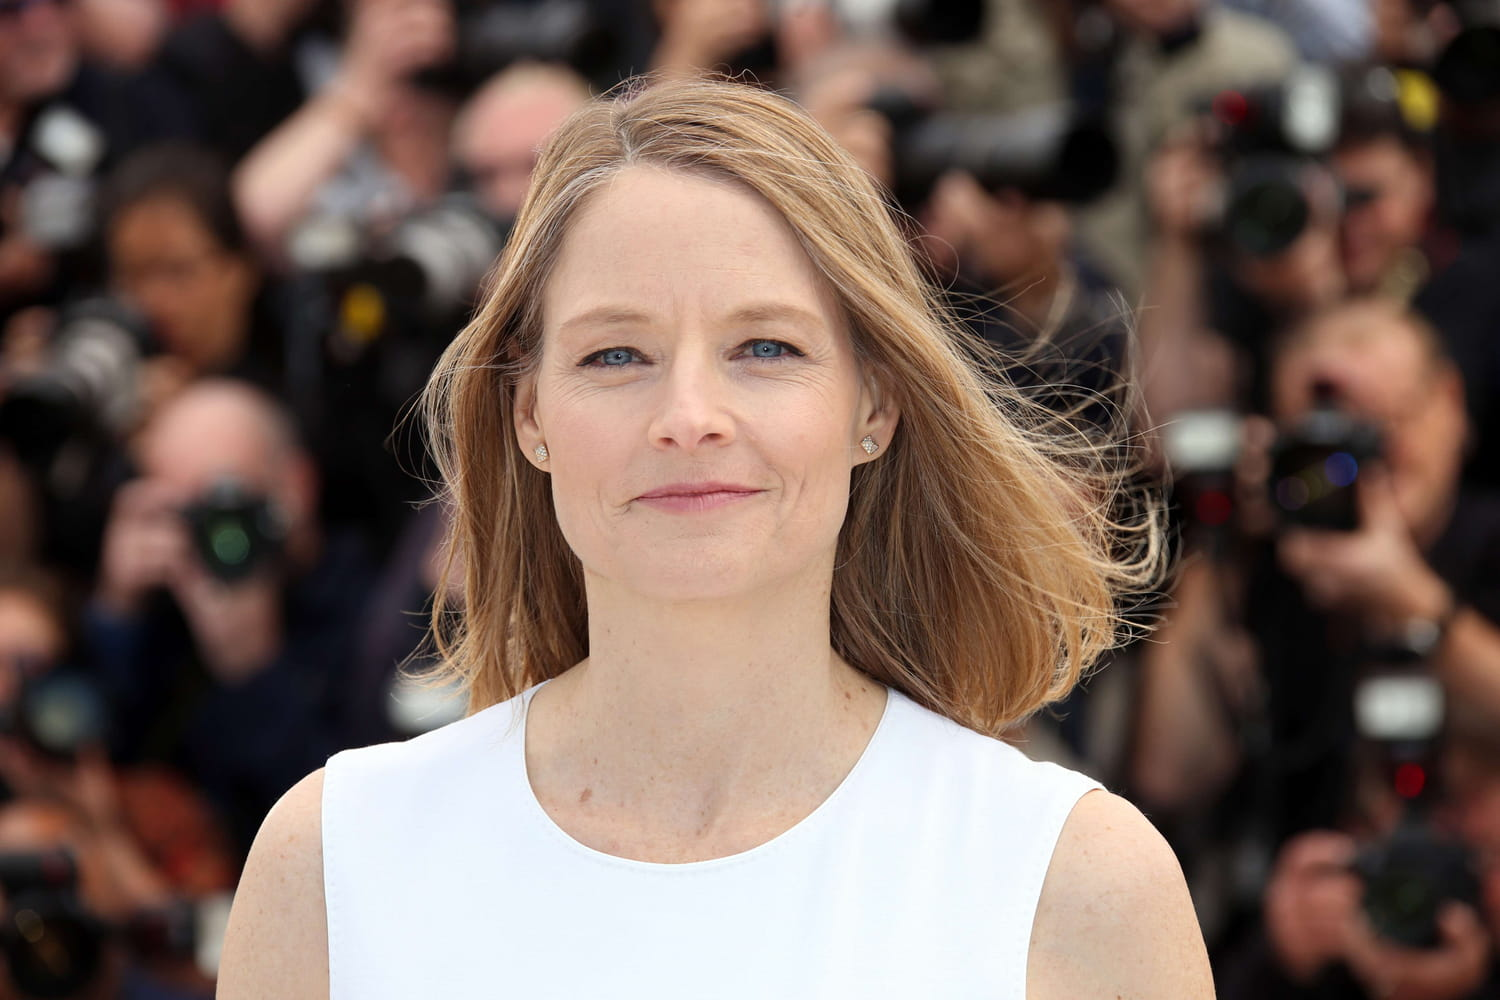 Cannes Film Festival: Jodie Foster will receive the honorary Palme d'Or 2021, when?